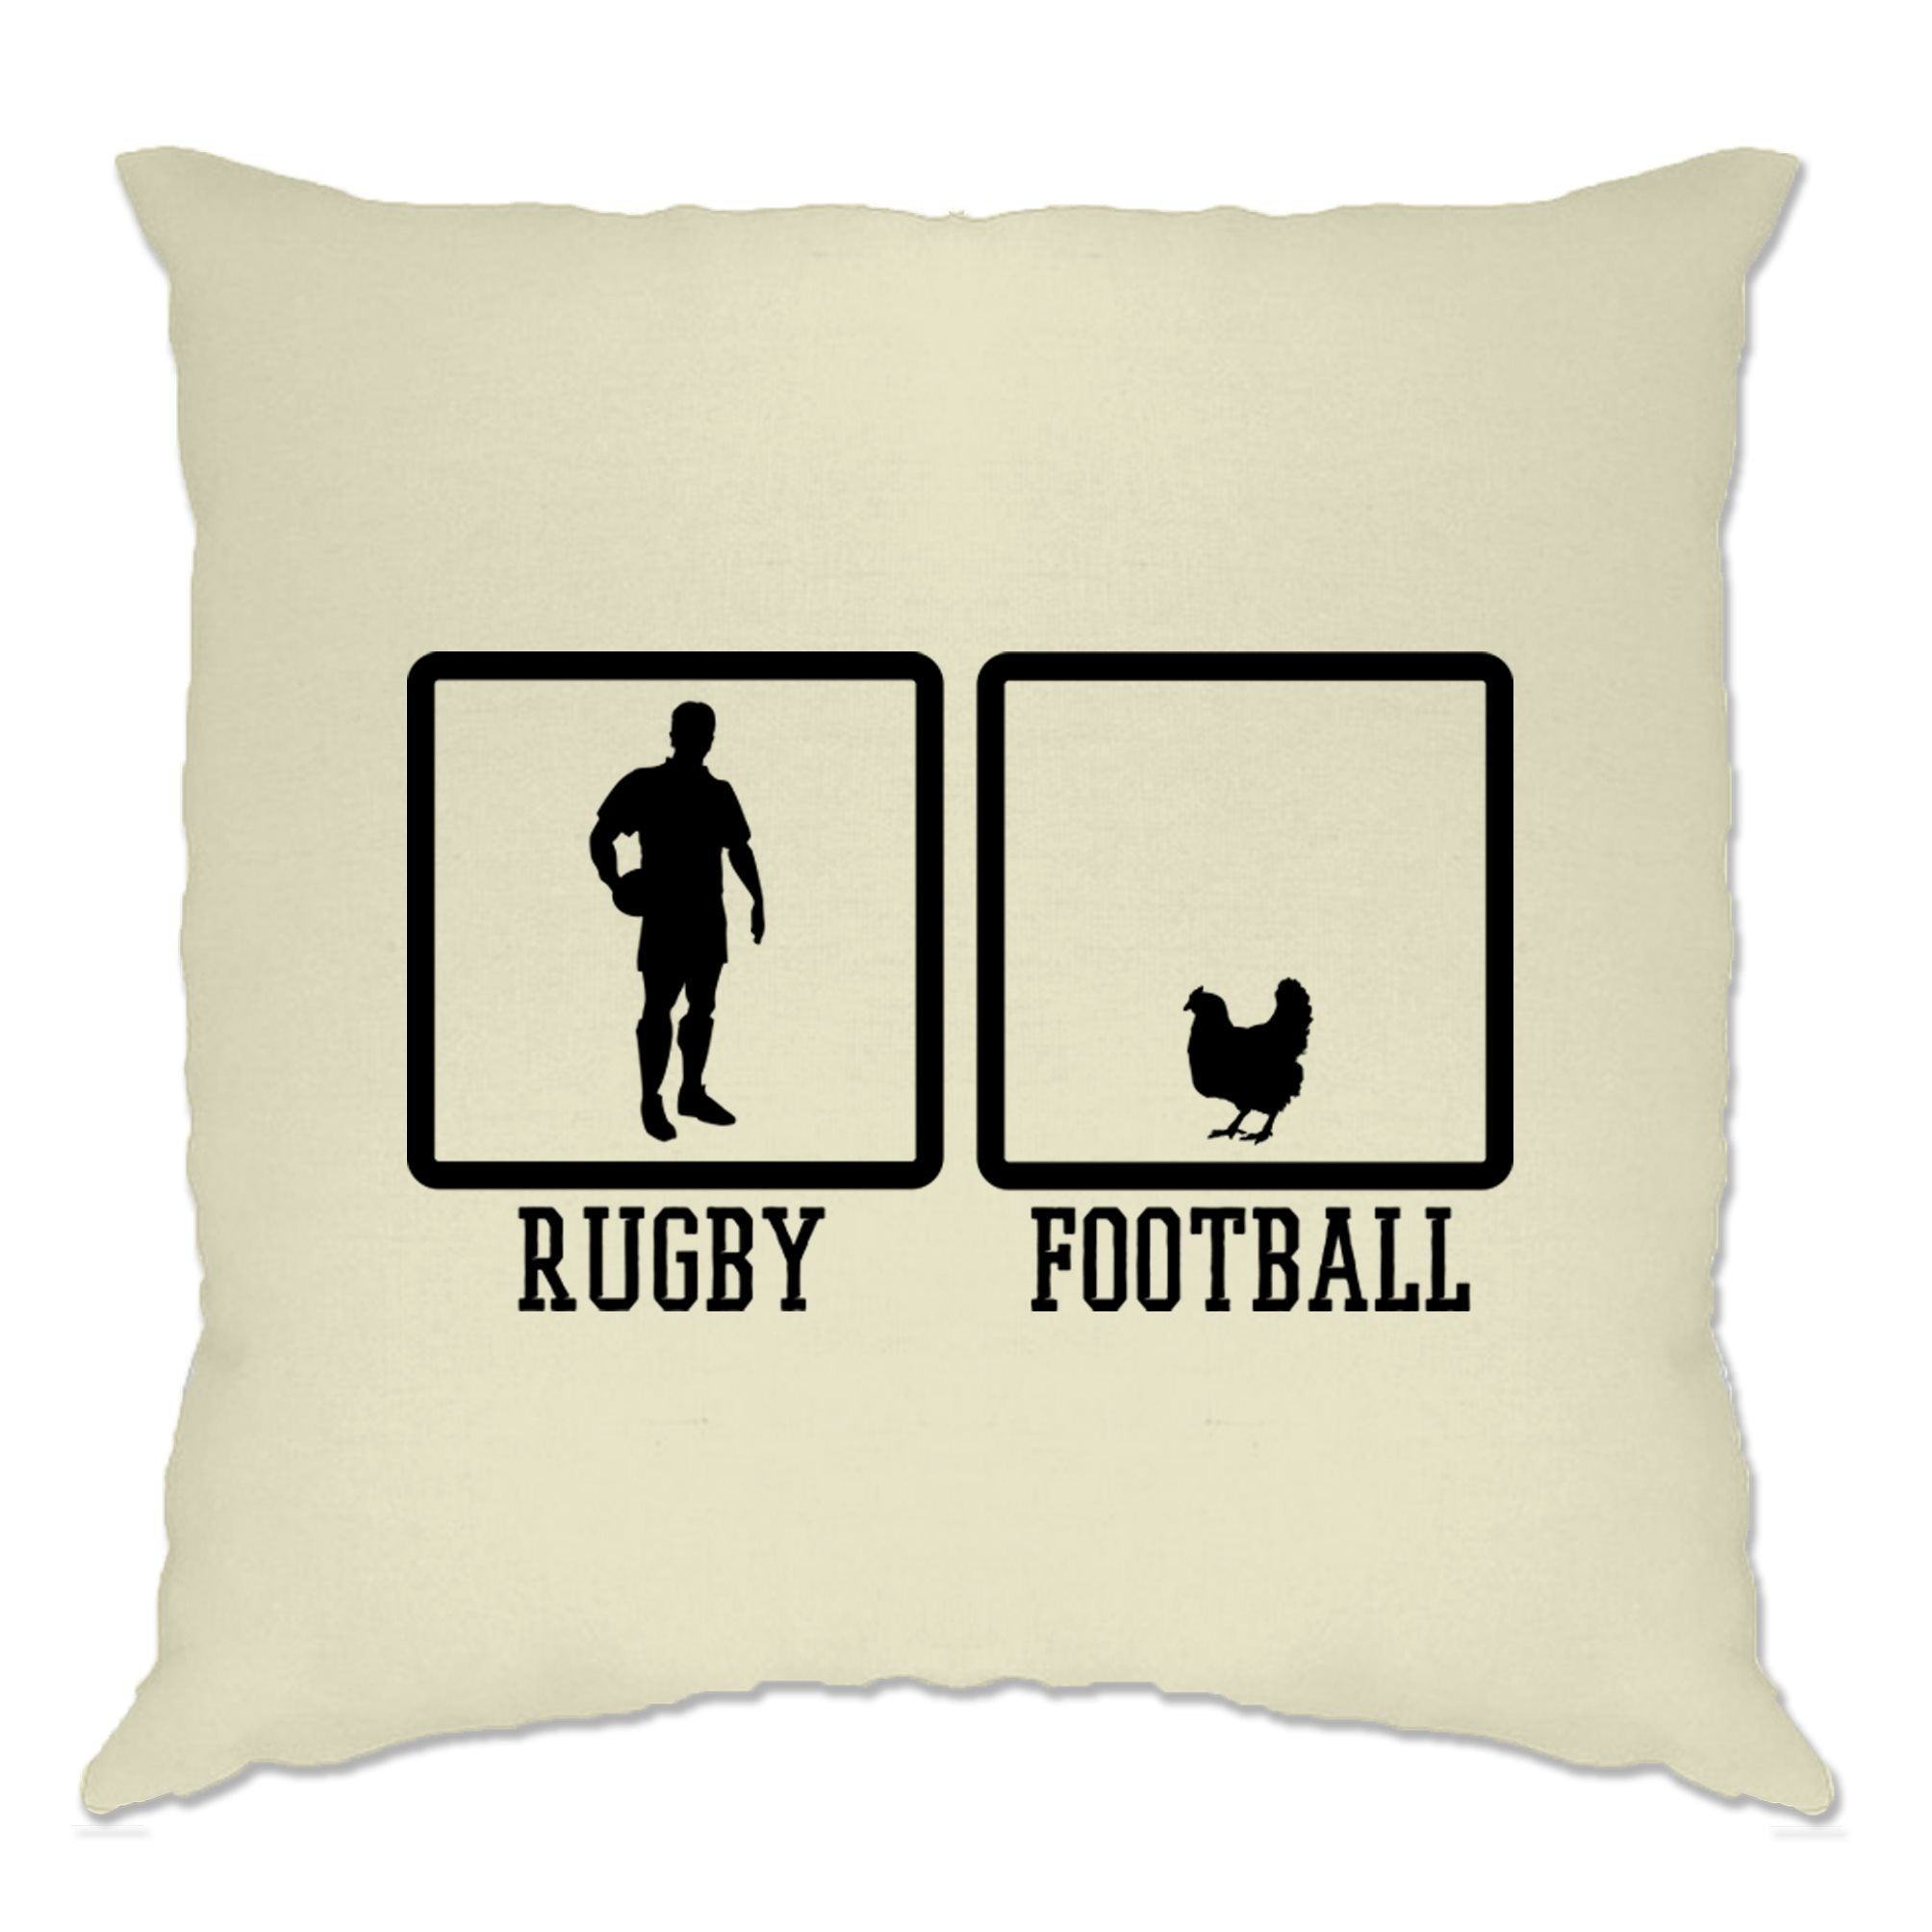 Joke Sports Cushion Cover Rugby Vs Football Chicken Novelty